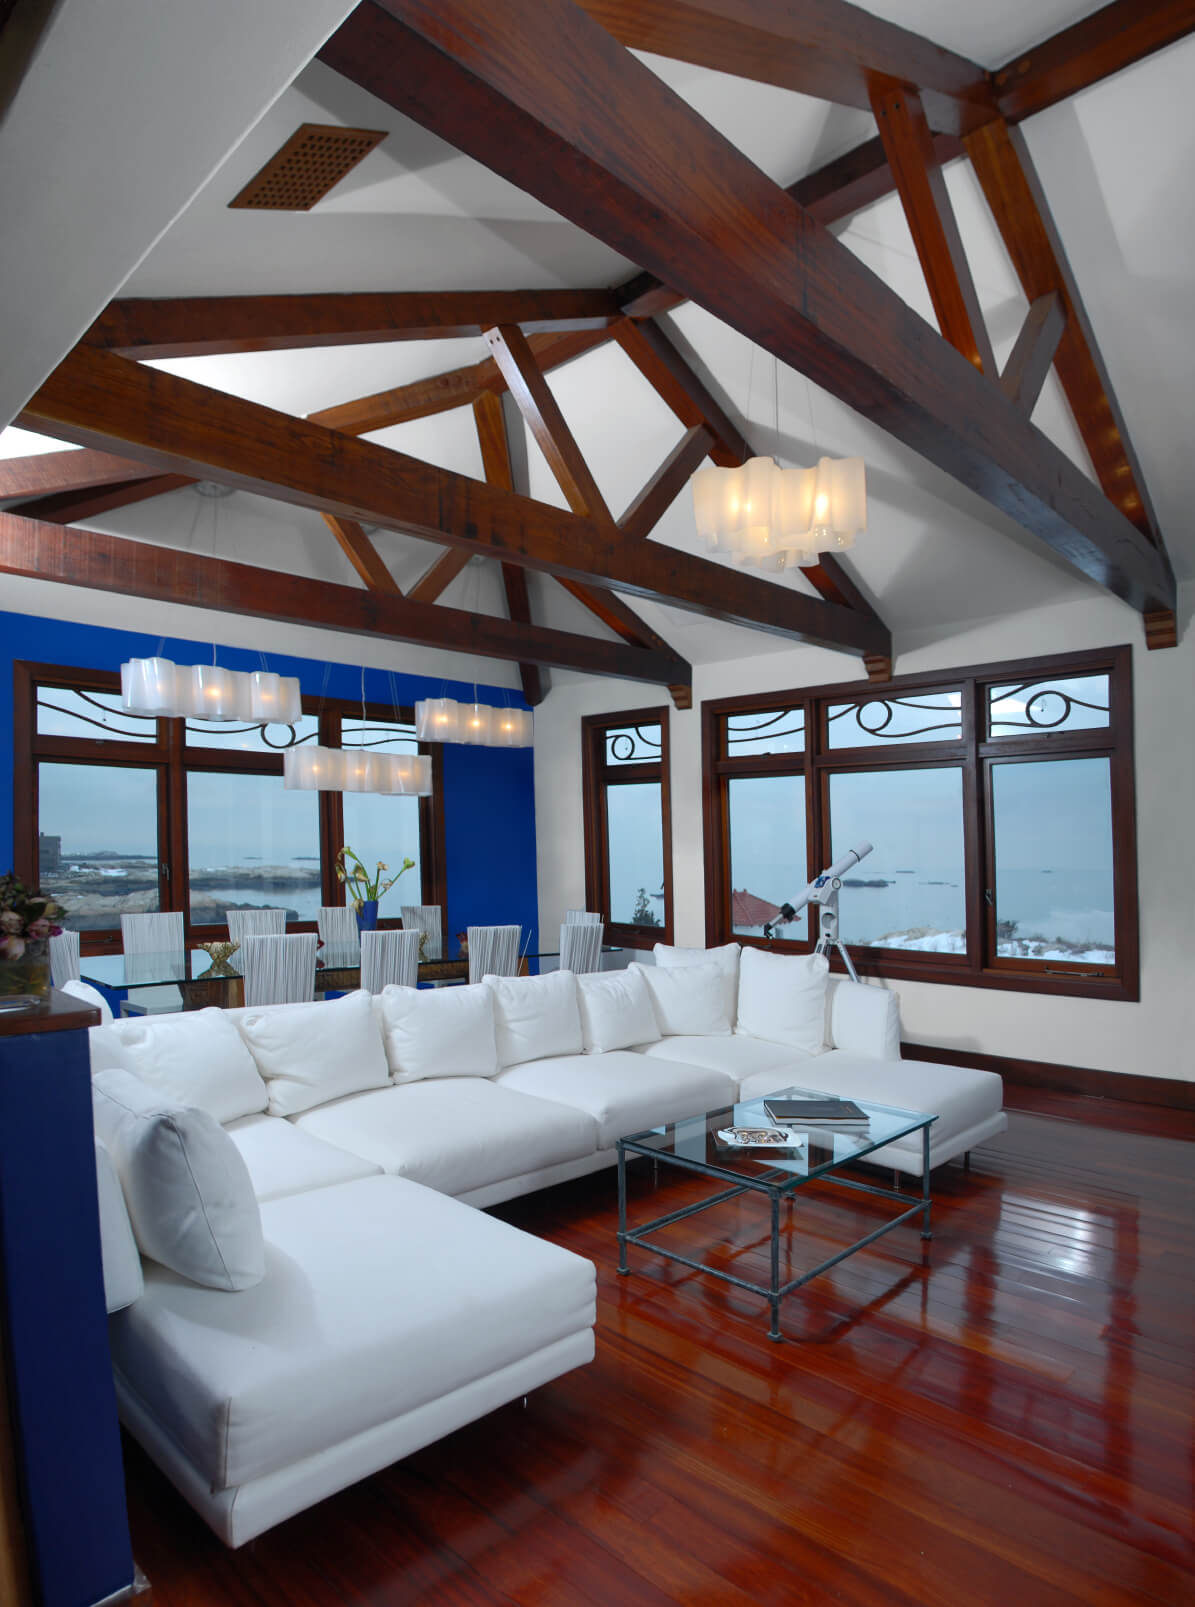 Bold mixture of dark hardwood flooring, white sectional, and blue wall details stand in this living room beneath vaulted, exposed beam ceiling.